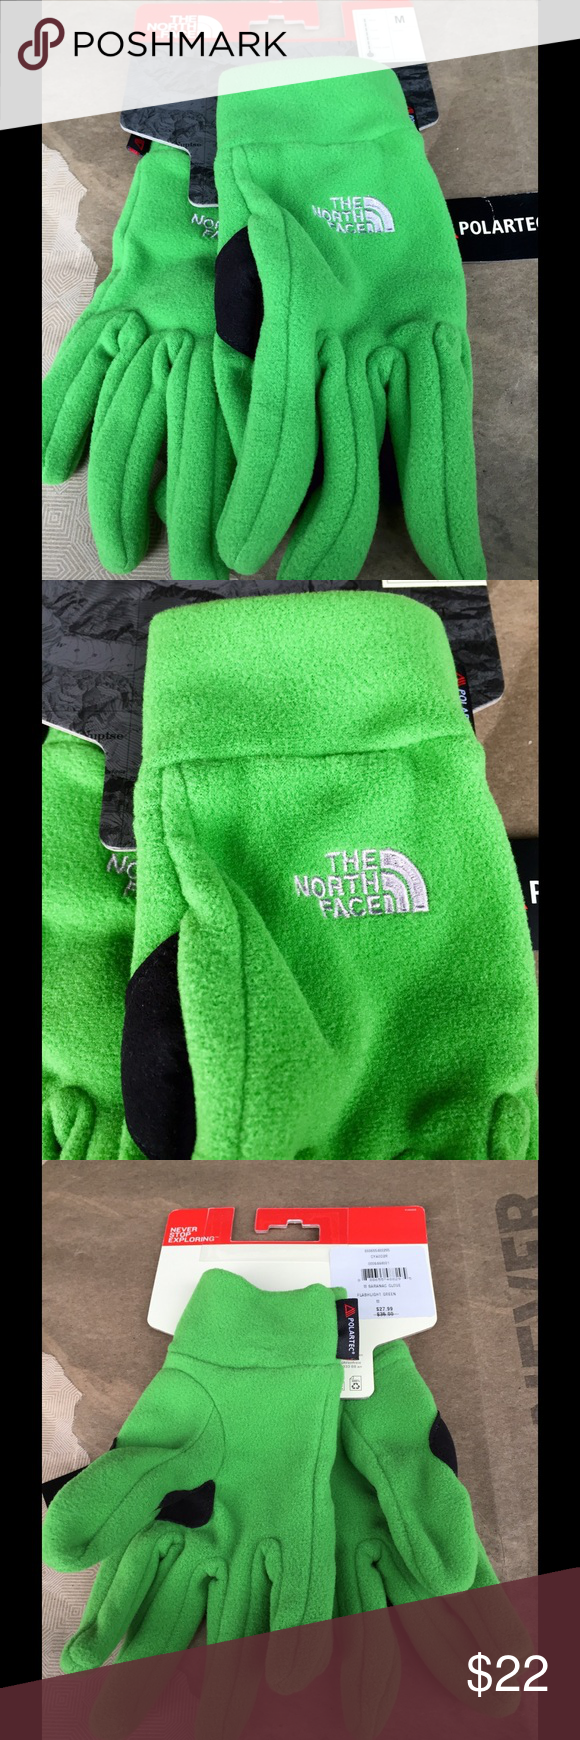 NWT The North Face Men's Saranac Gloves M Brand new with tag, The North Face Men's Saranac Gloves in Flashlight Green, size M. Price is firm. No trades. North Face Accessories Gloves